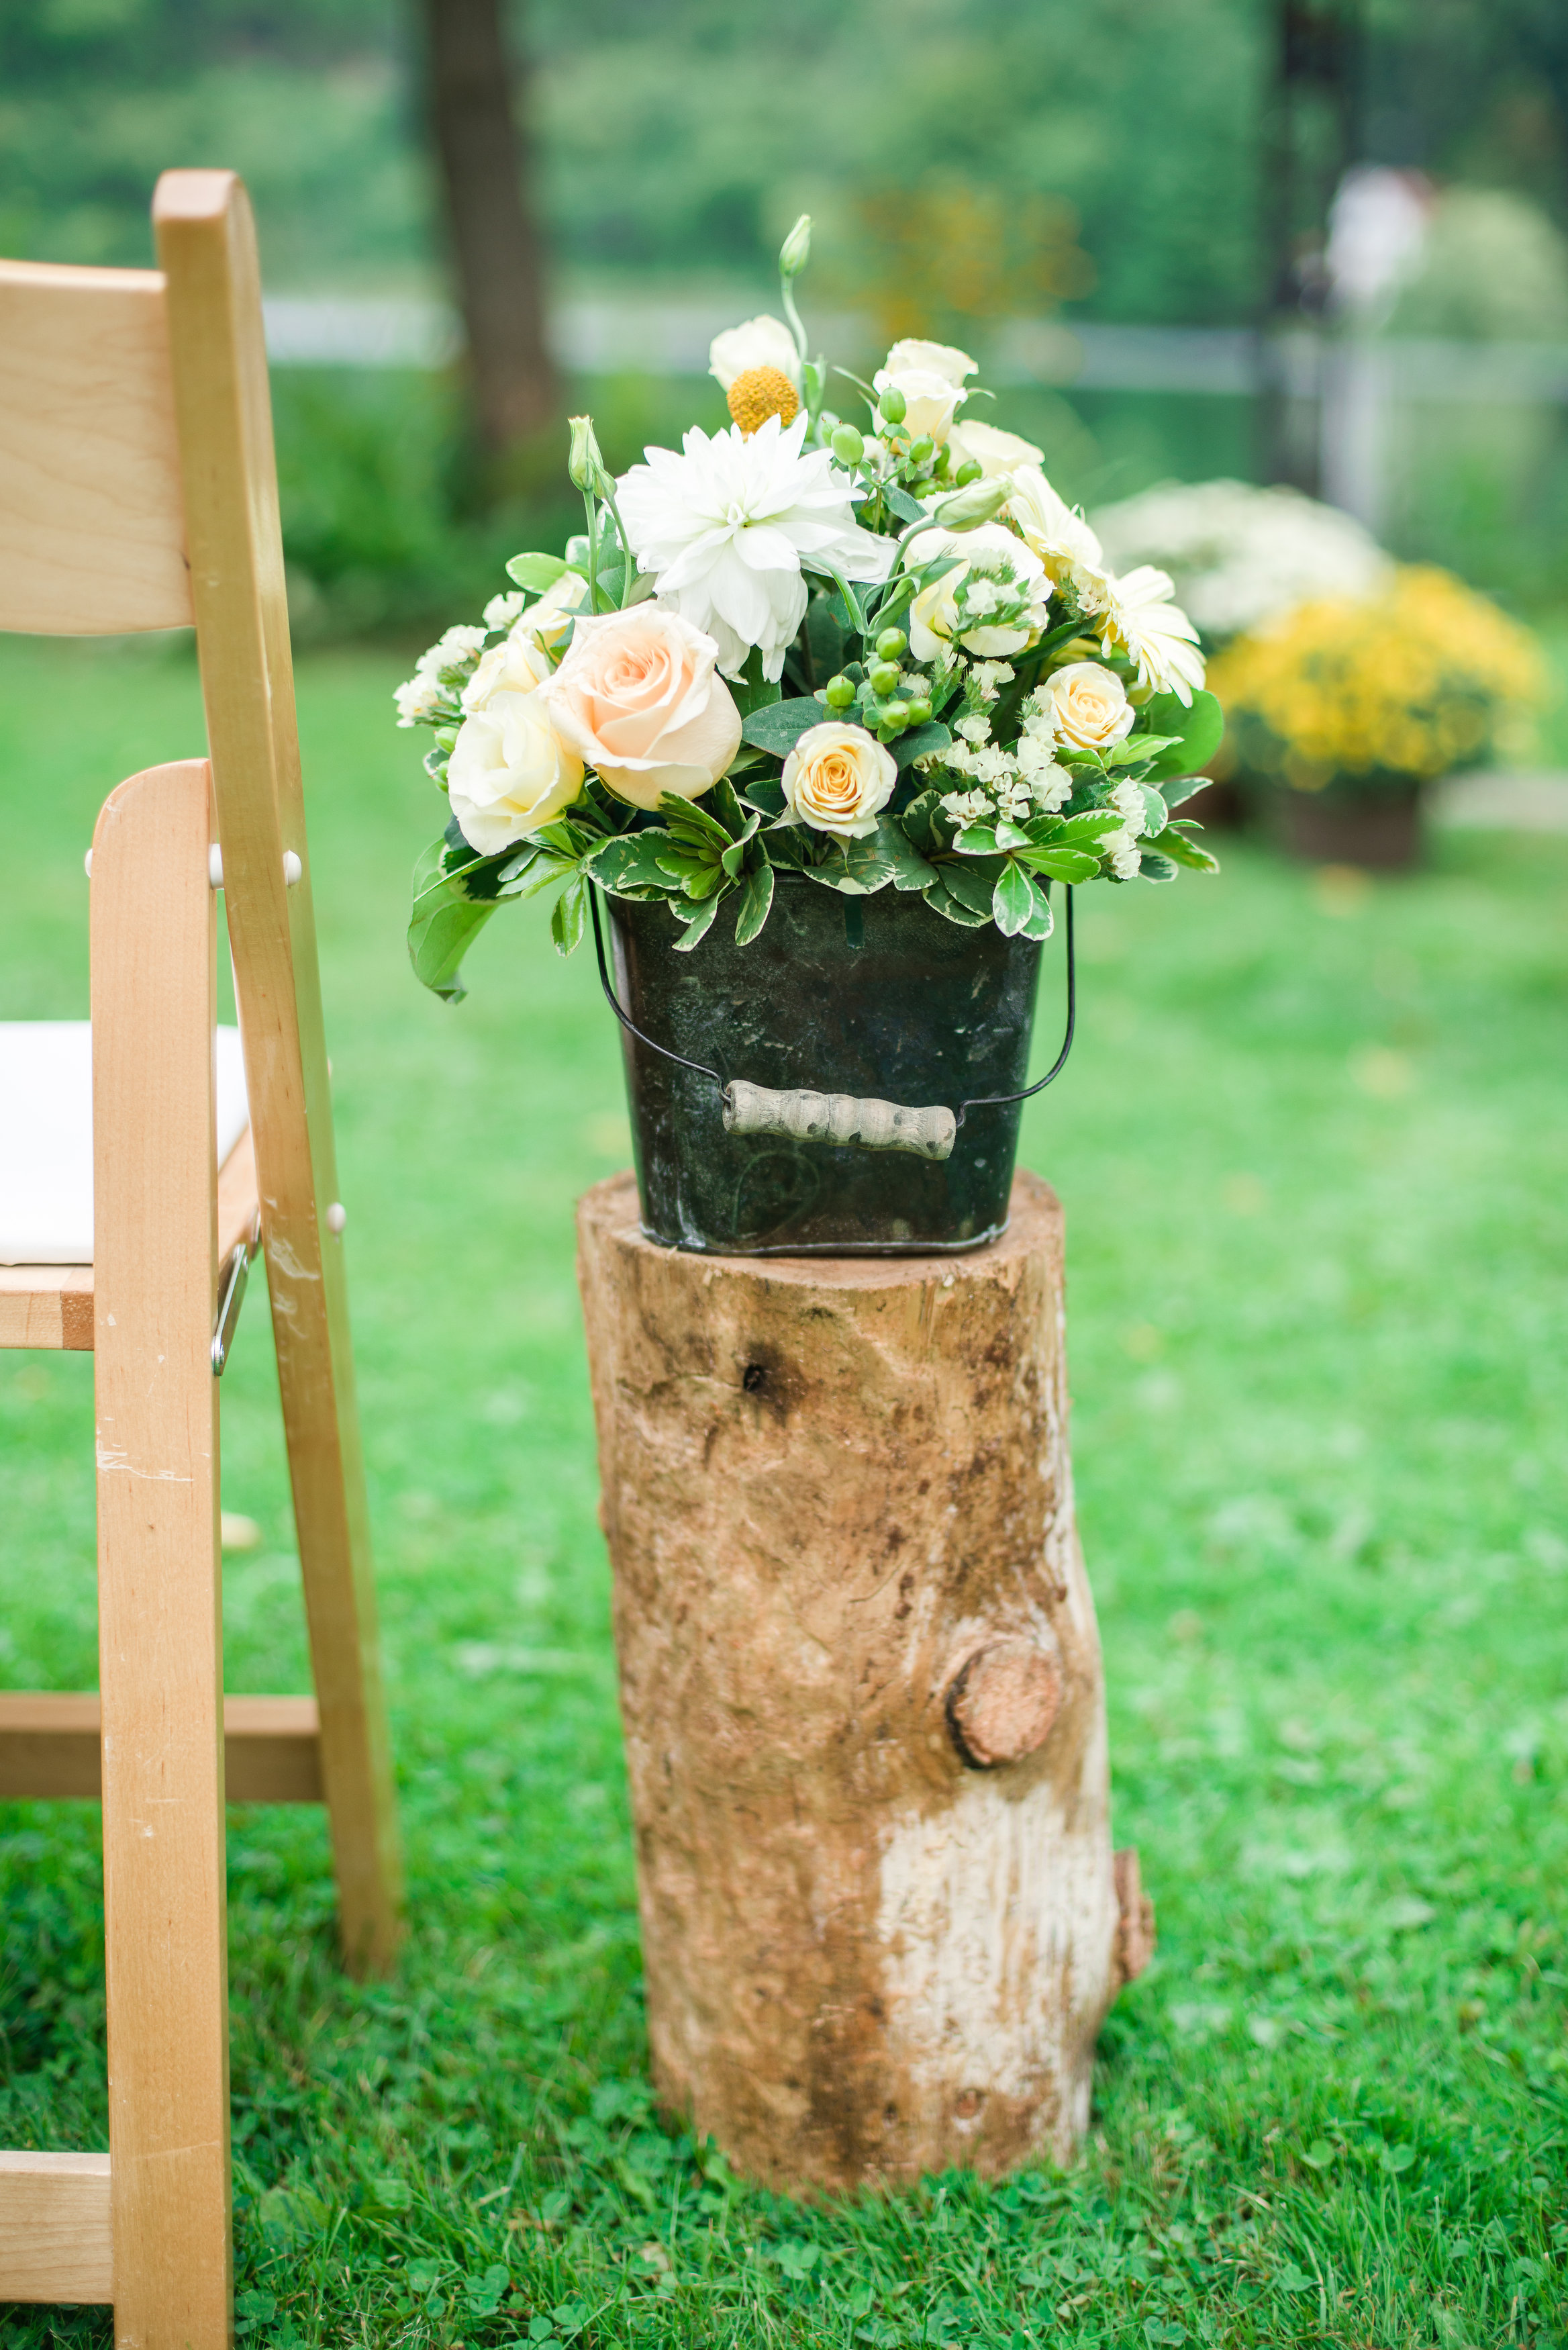 Heirloom-Events-and-Decor-Ottawa-Wedding-Decor-Metal-Bucket